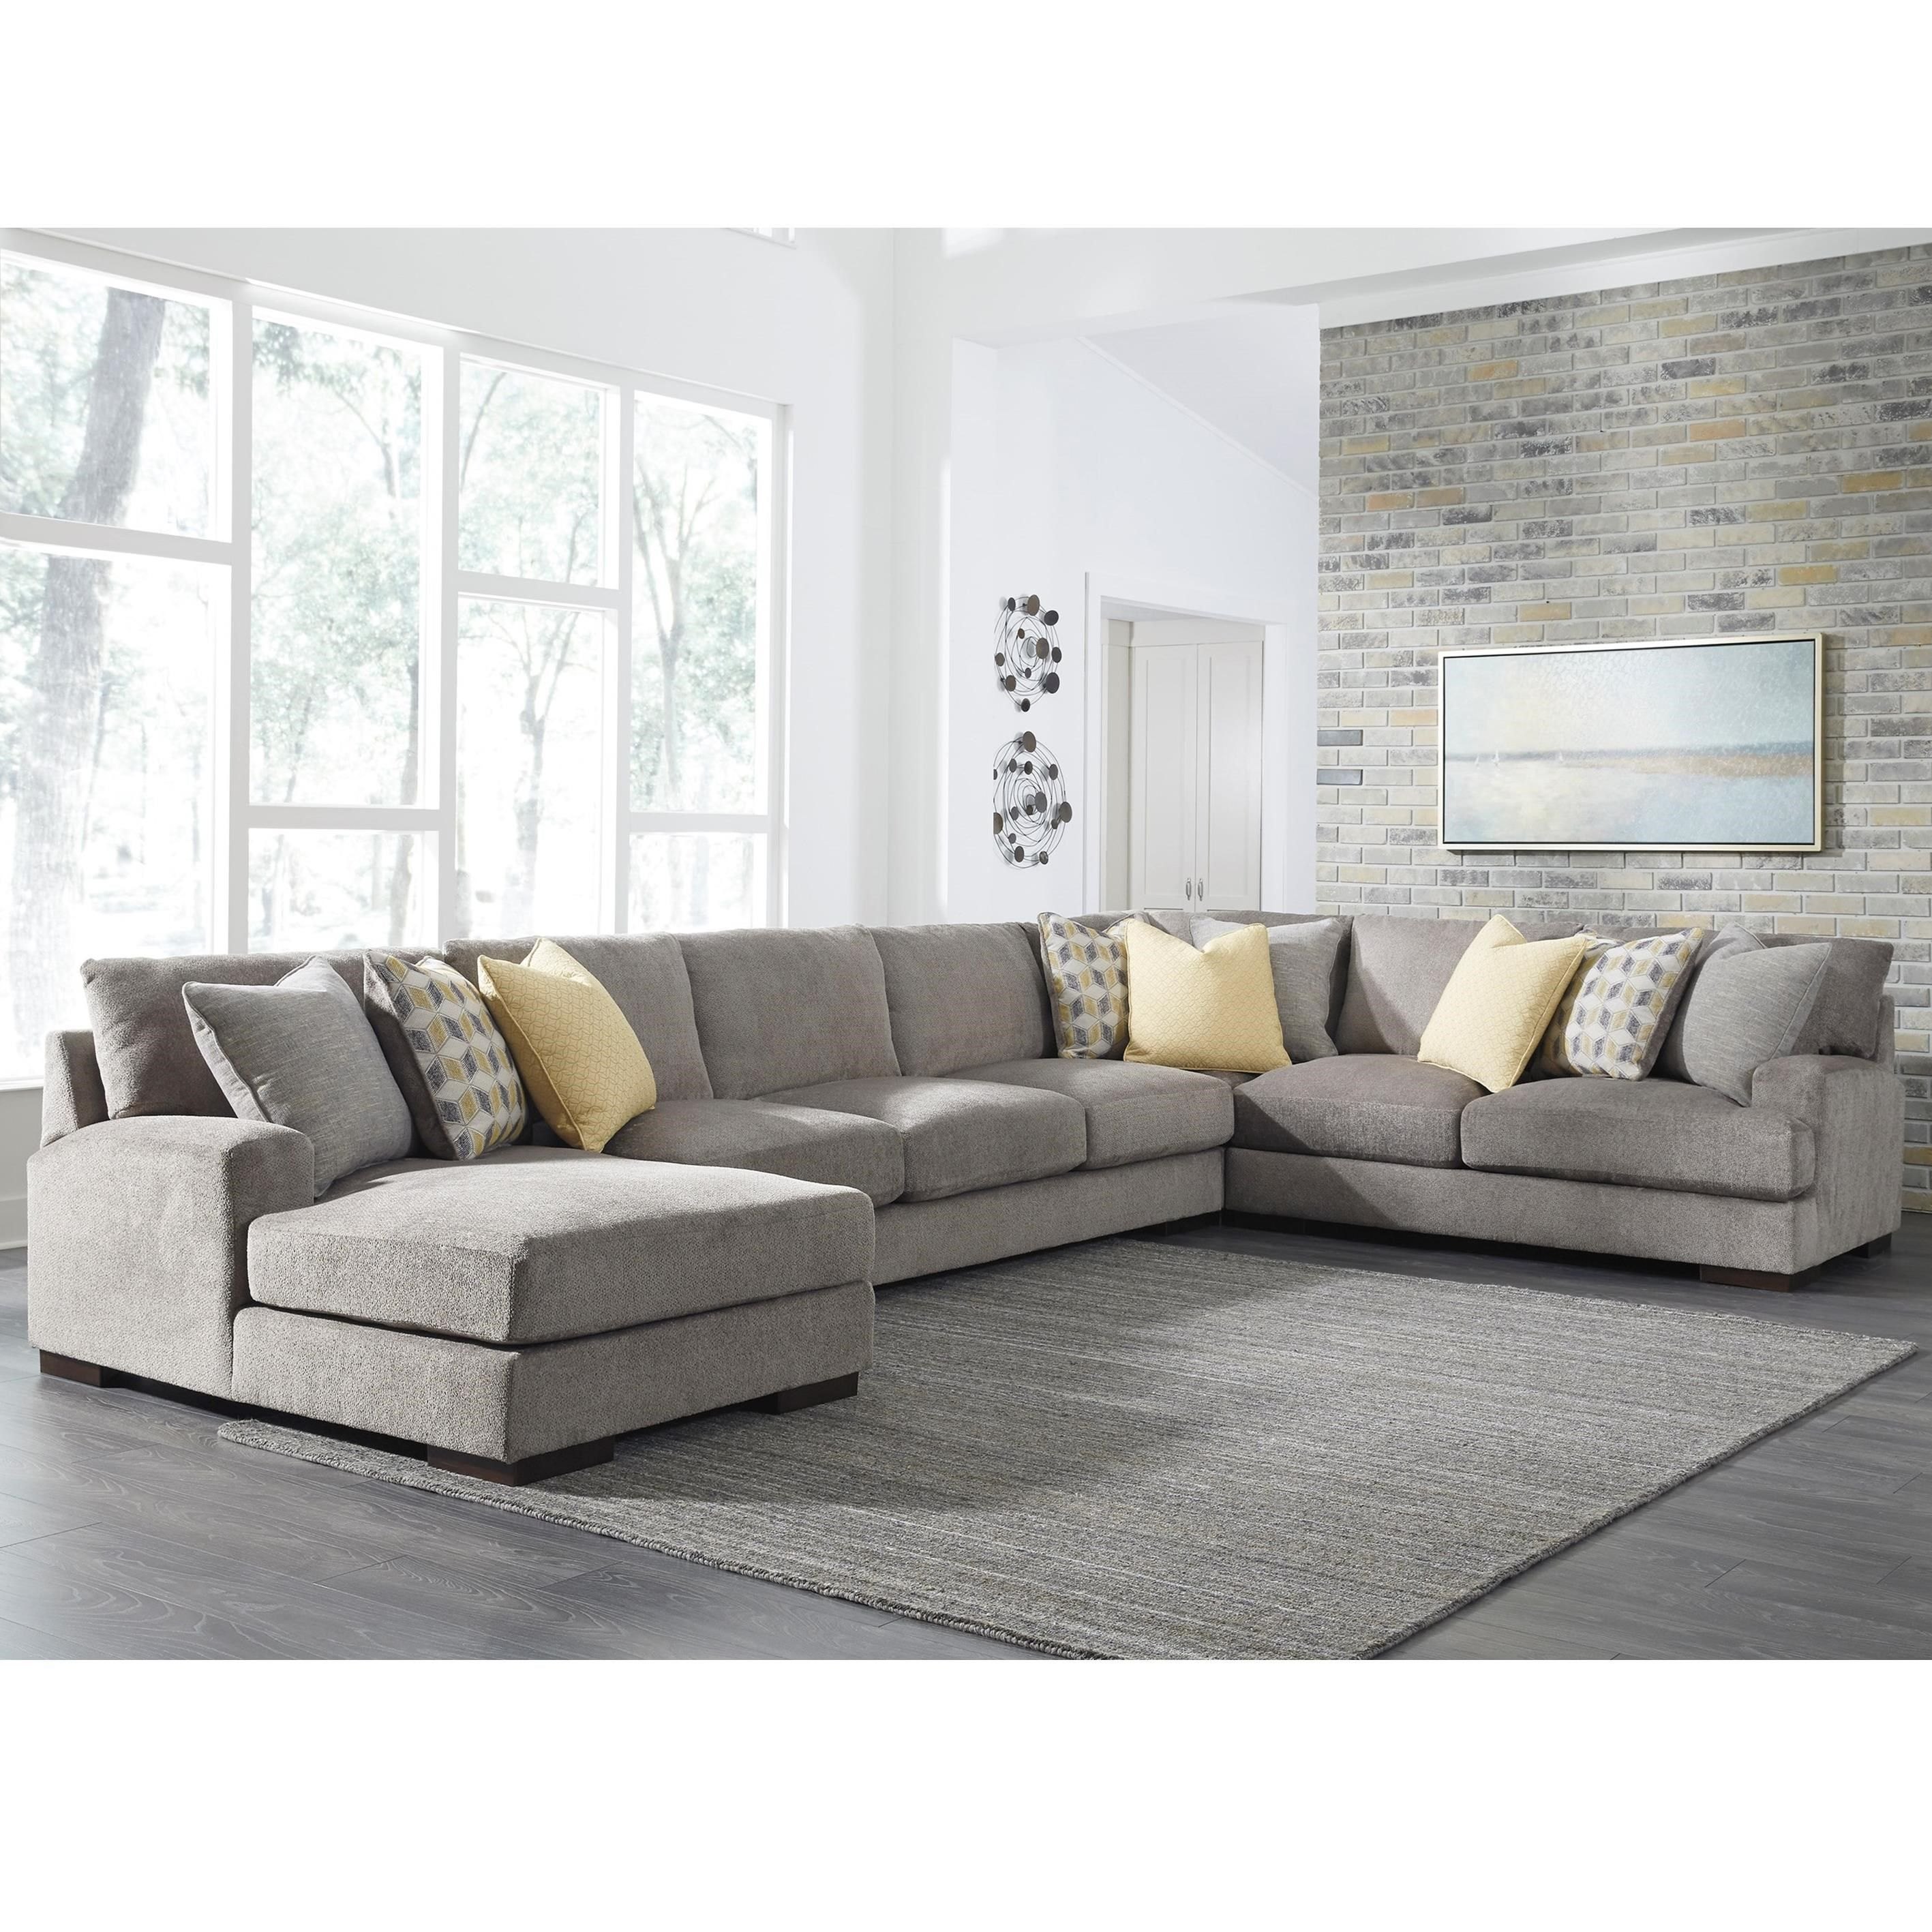 Fallsworth 4 Piece Sectional By Benchcraft At Sam Levitz Furniture